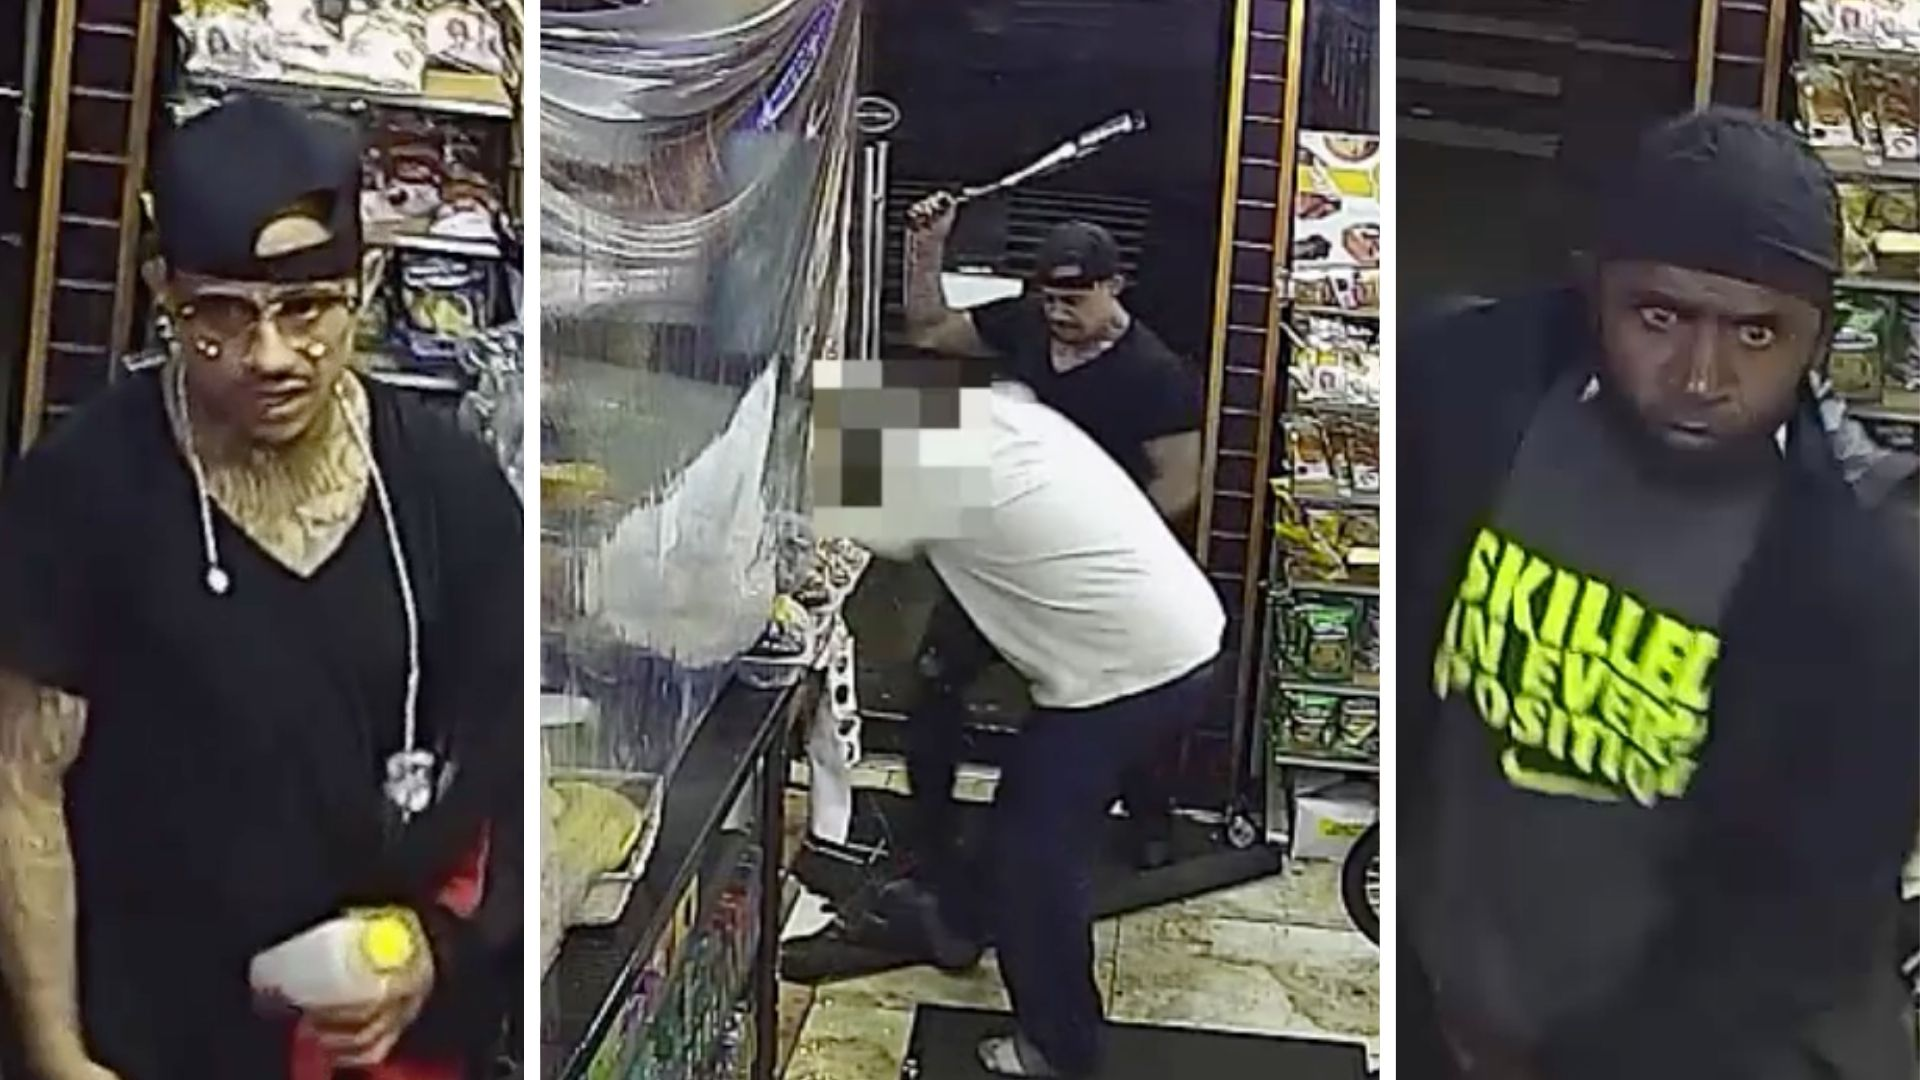 Lower East Side bodega clerk attacked after confronting alleged thieves